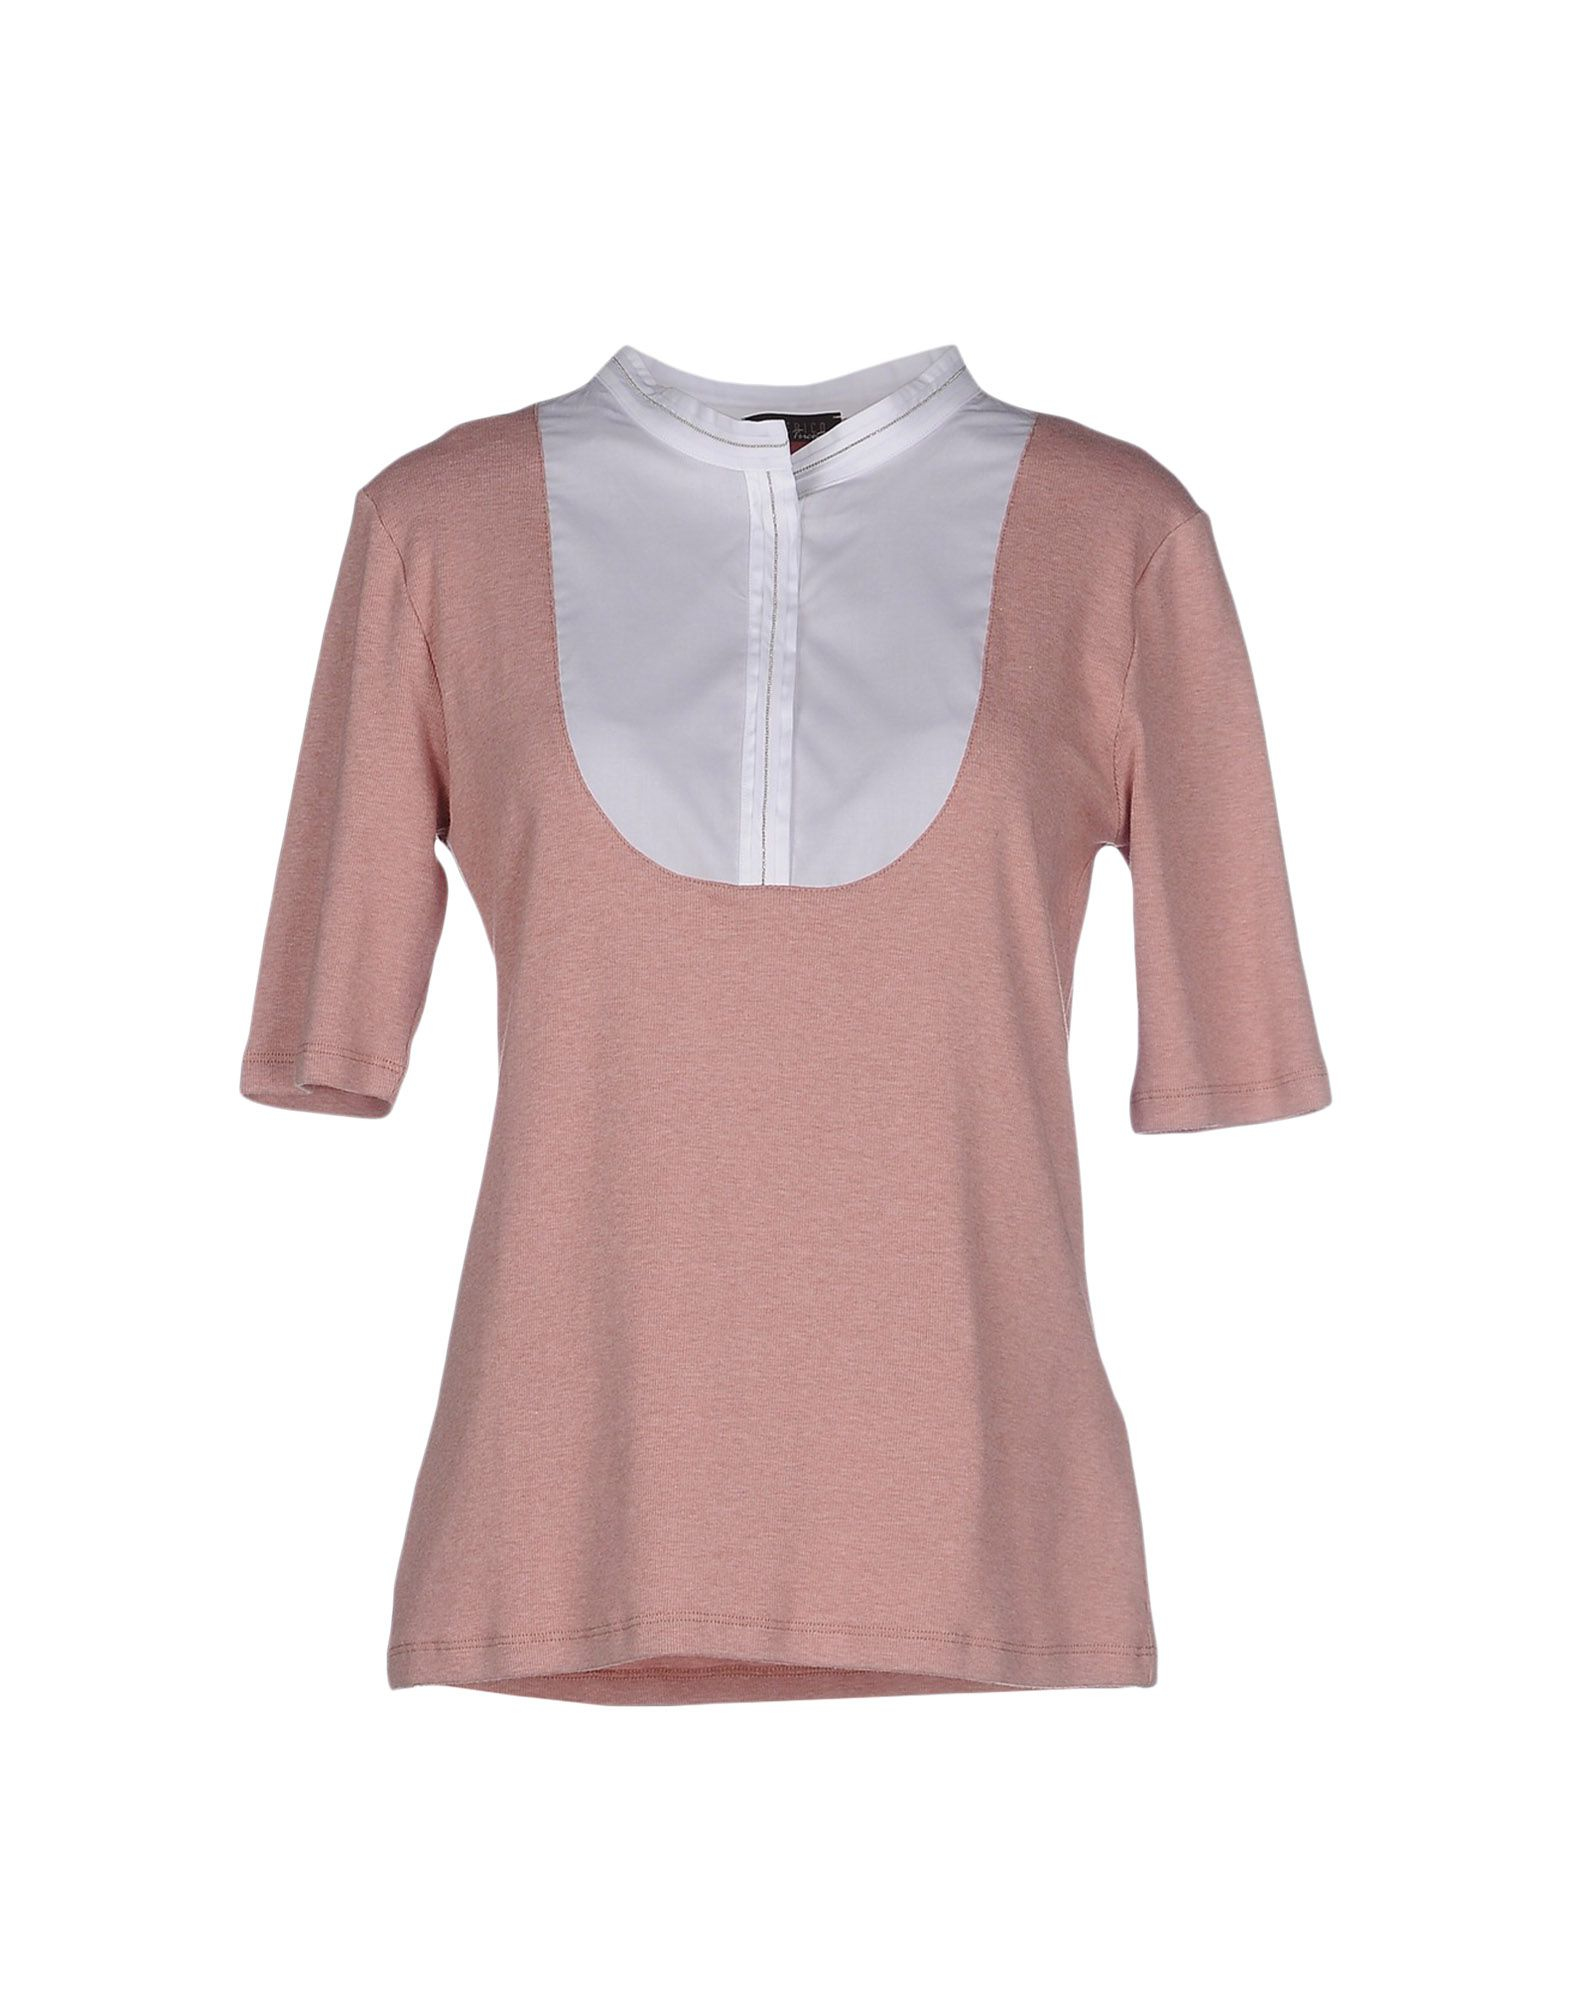 Peserico t shirt in pink lyst for Pastel pink dress shirt